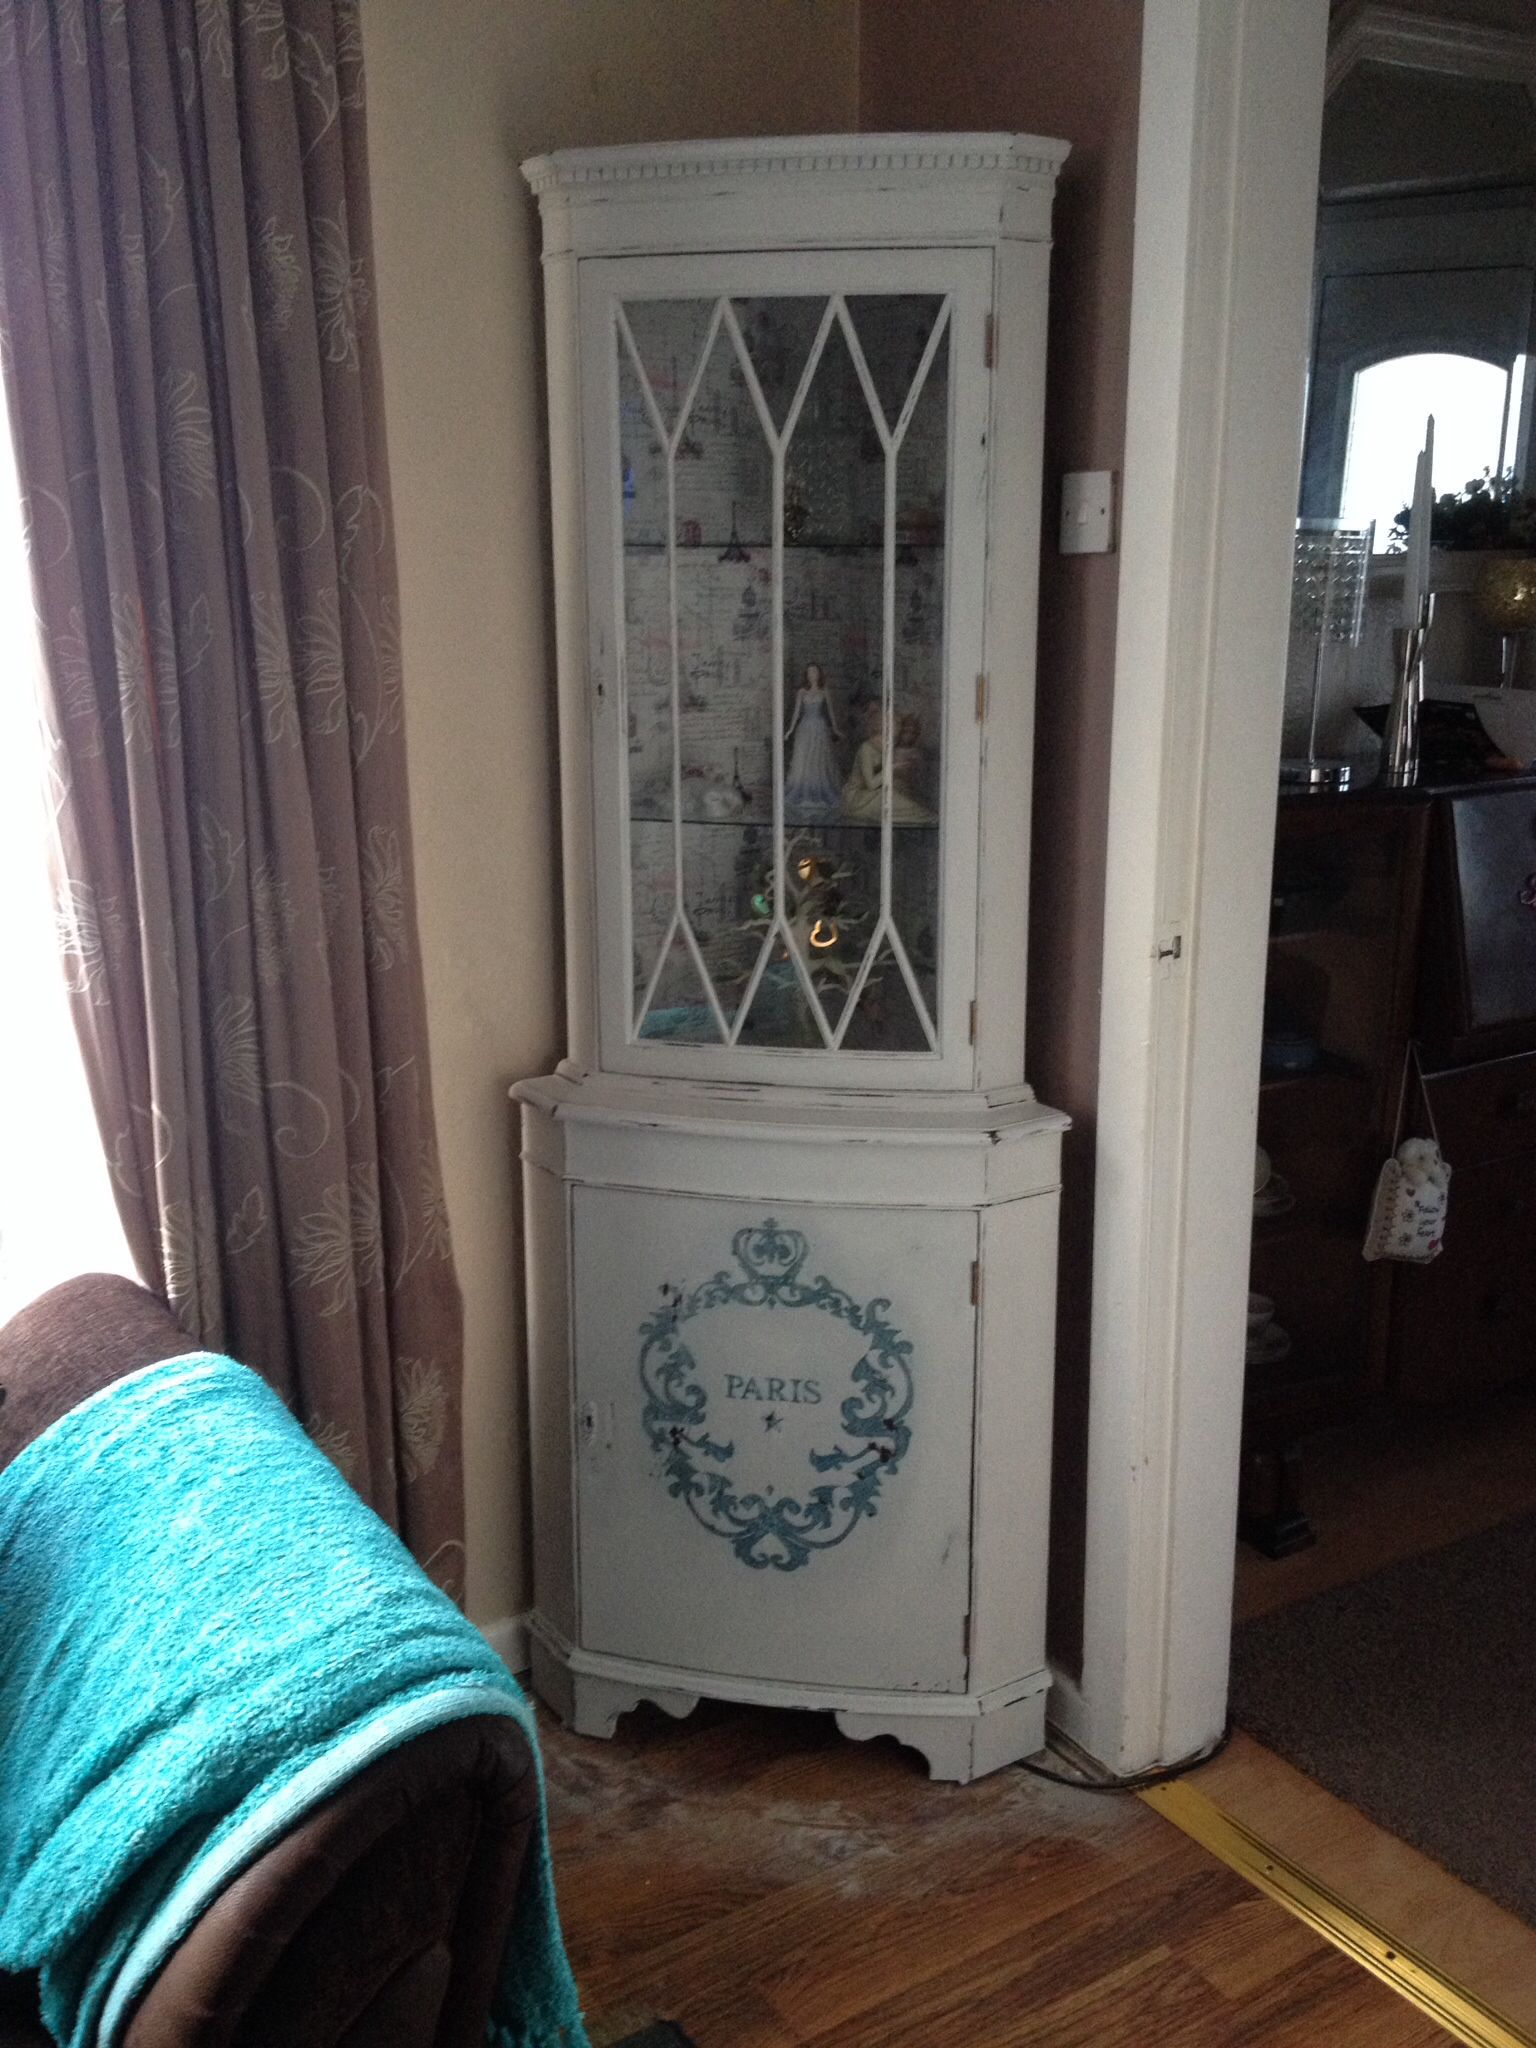 2nd shabby chic corner cabinet display unit with large hand drawn copy of a French Paris typography. Lined in French Eiffel Tower paper and distressed. Lived this price but had to sell it to make room for the 3rd cabinet I bought! By Donna Wilkinson